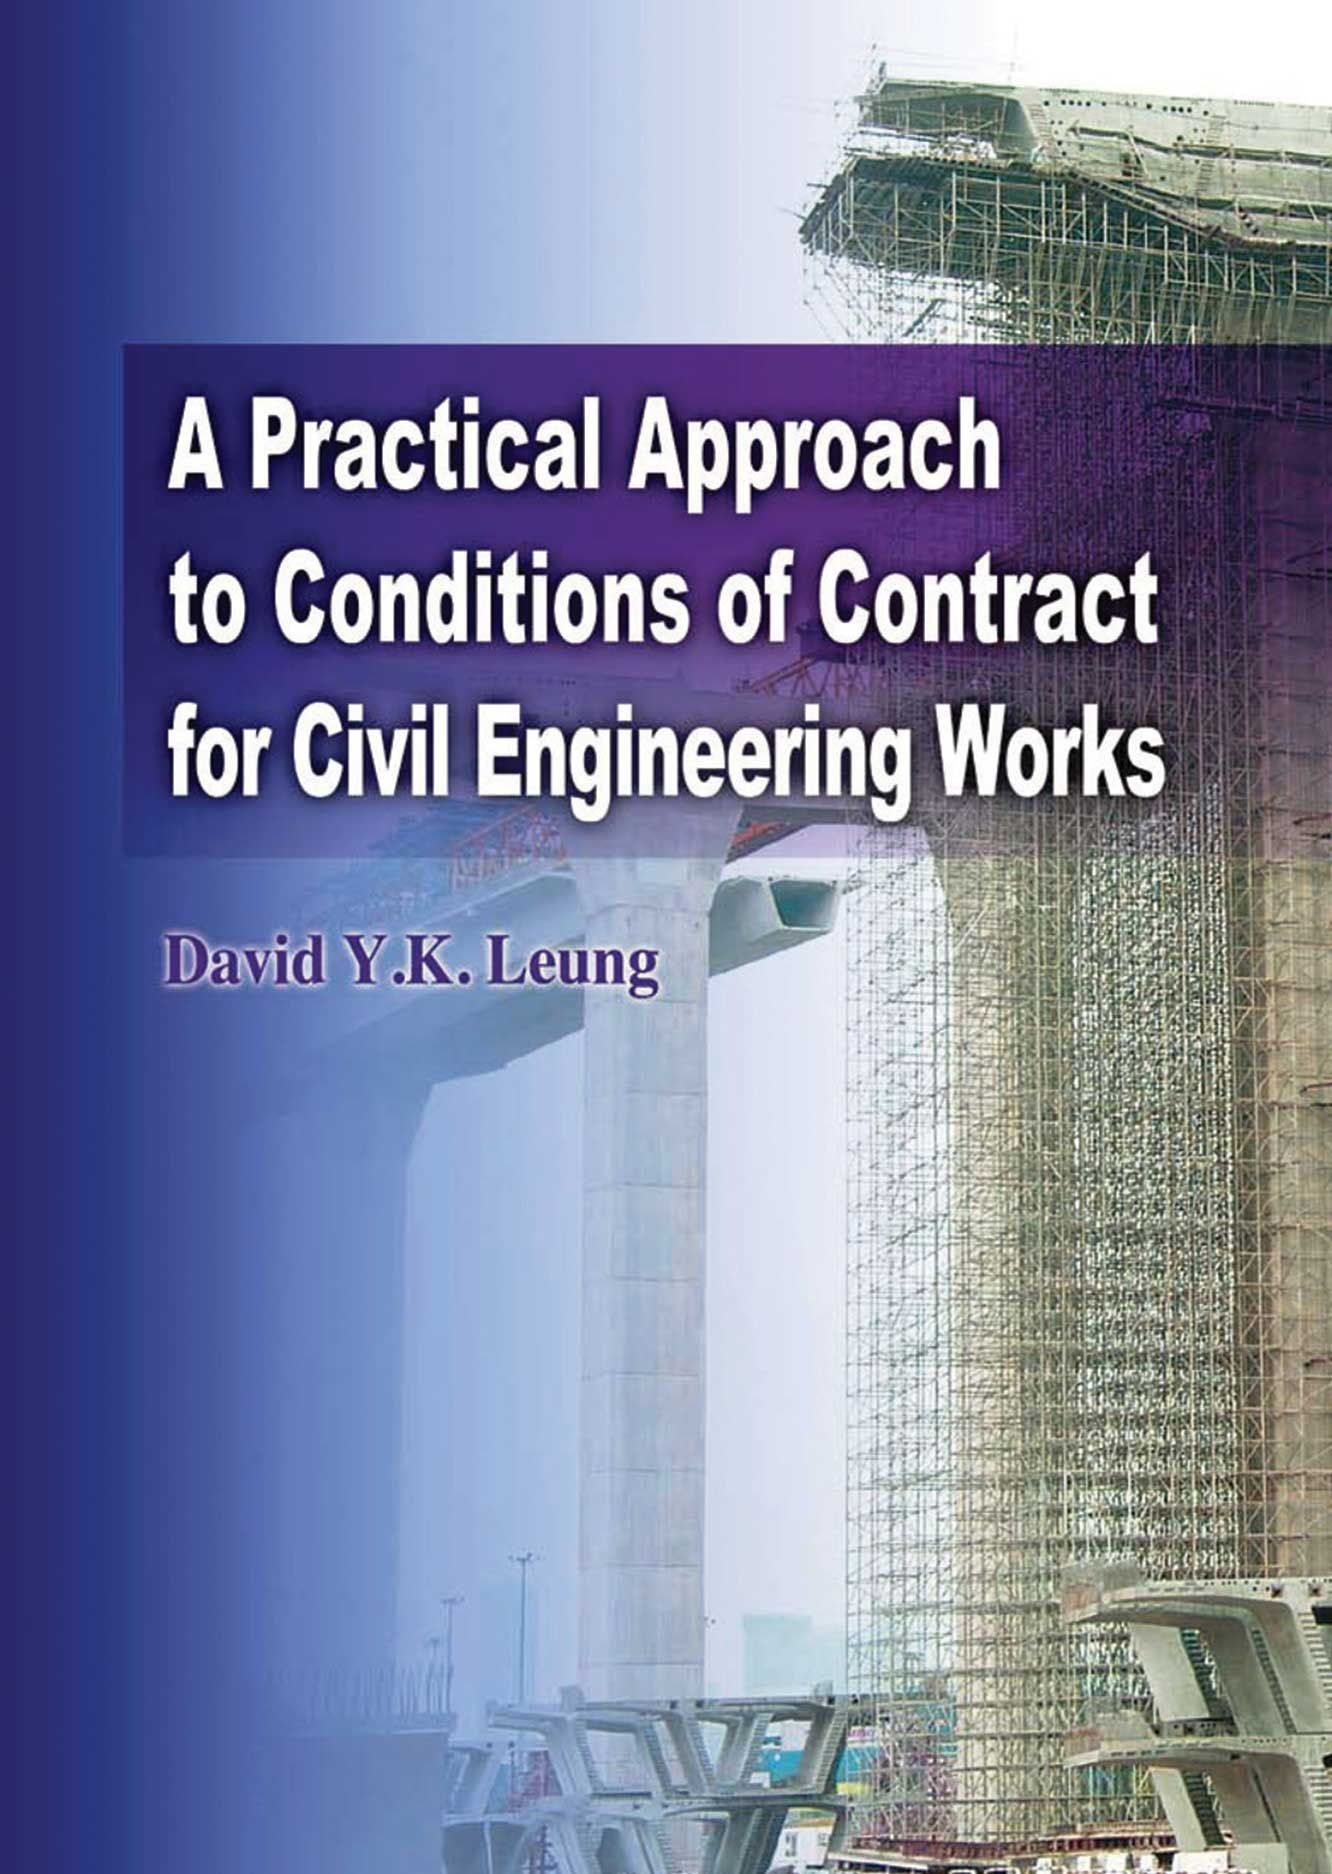 A Practical Approach to Conditions of Contract for Civil Engineering Works